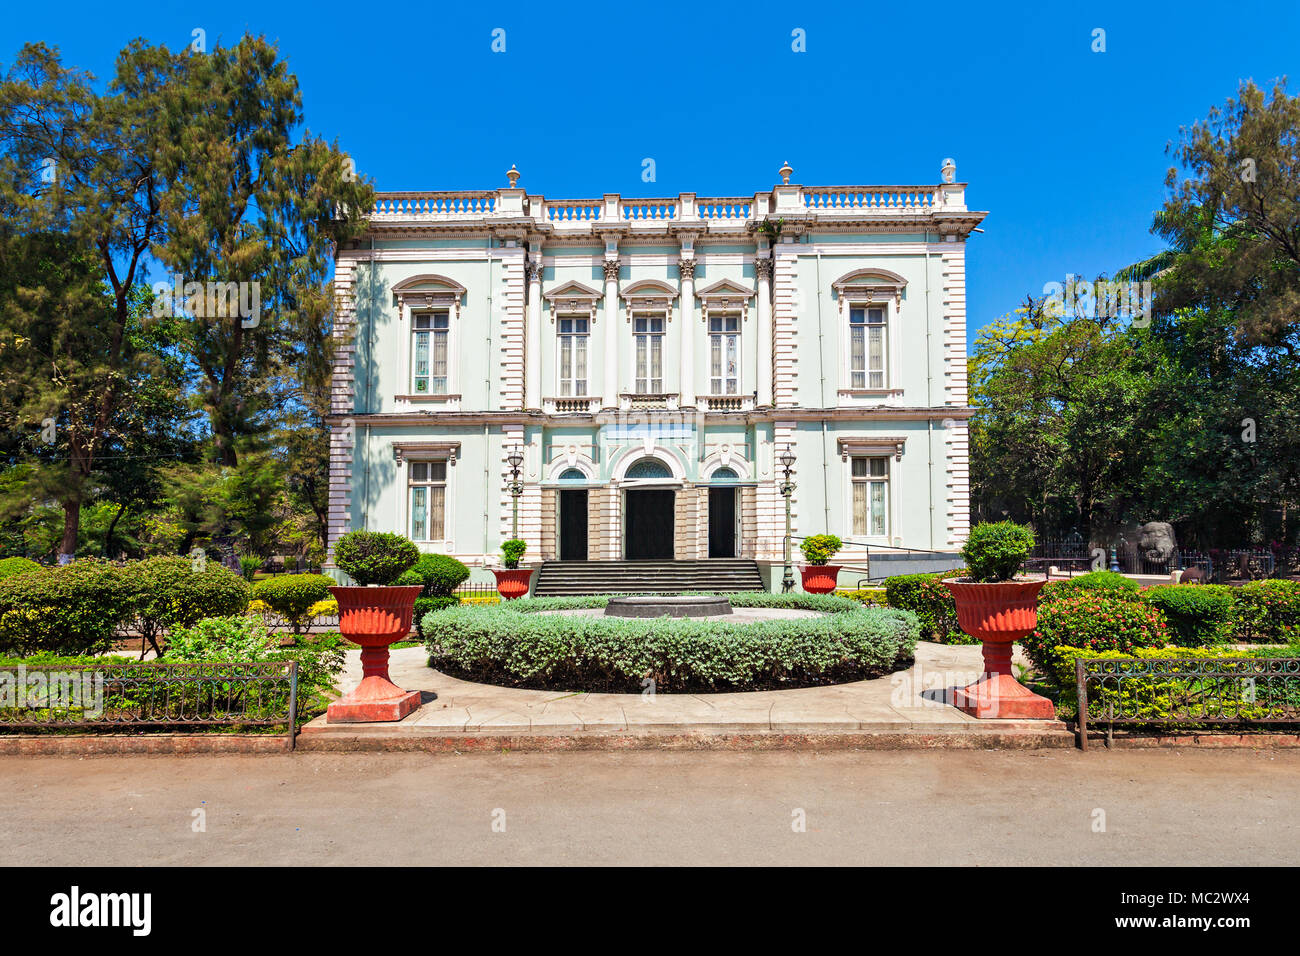 The Dr. Bhau Daji Lad Mumbai City Museum (formerly the Victoria and Albert Museum) is the oldest museum in Mumbai, India - Stock Image